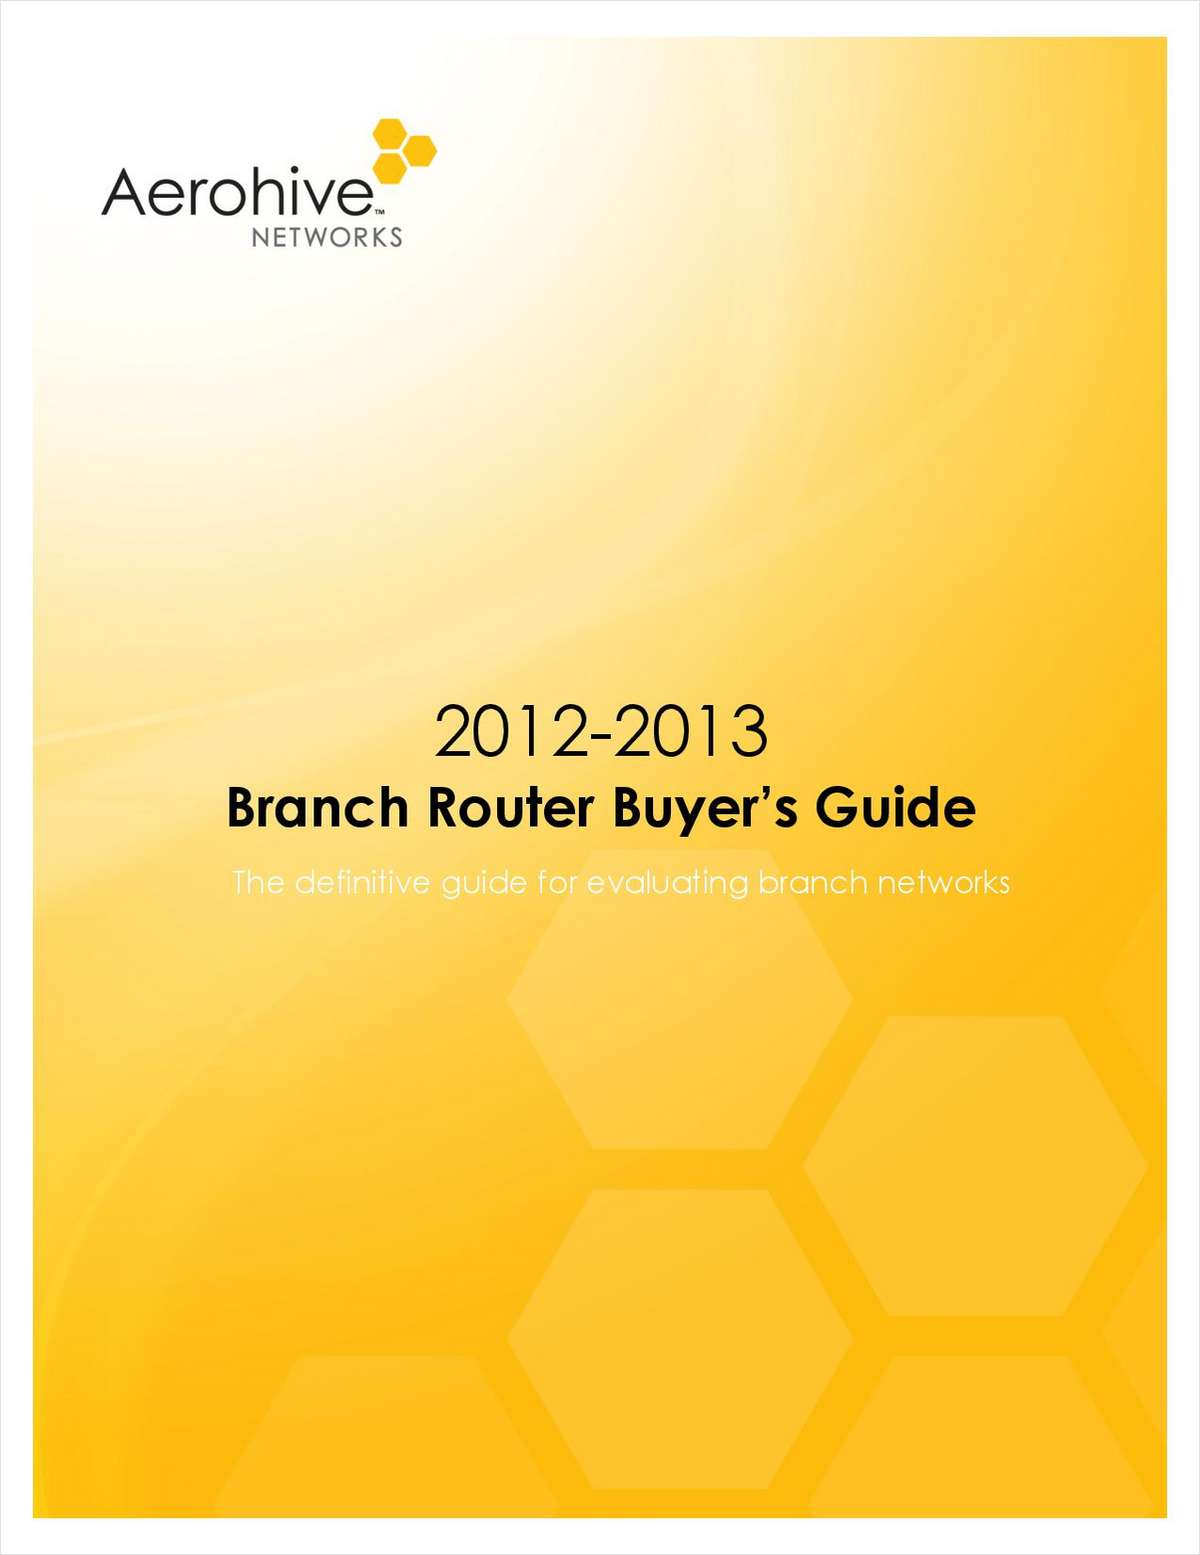 2012-2013 Branch Router Buyer's Guide